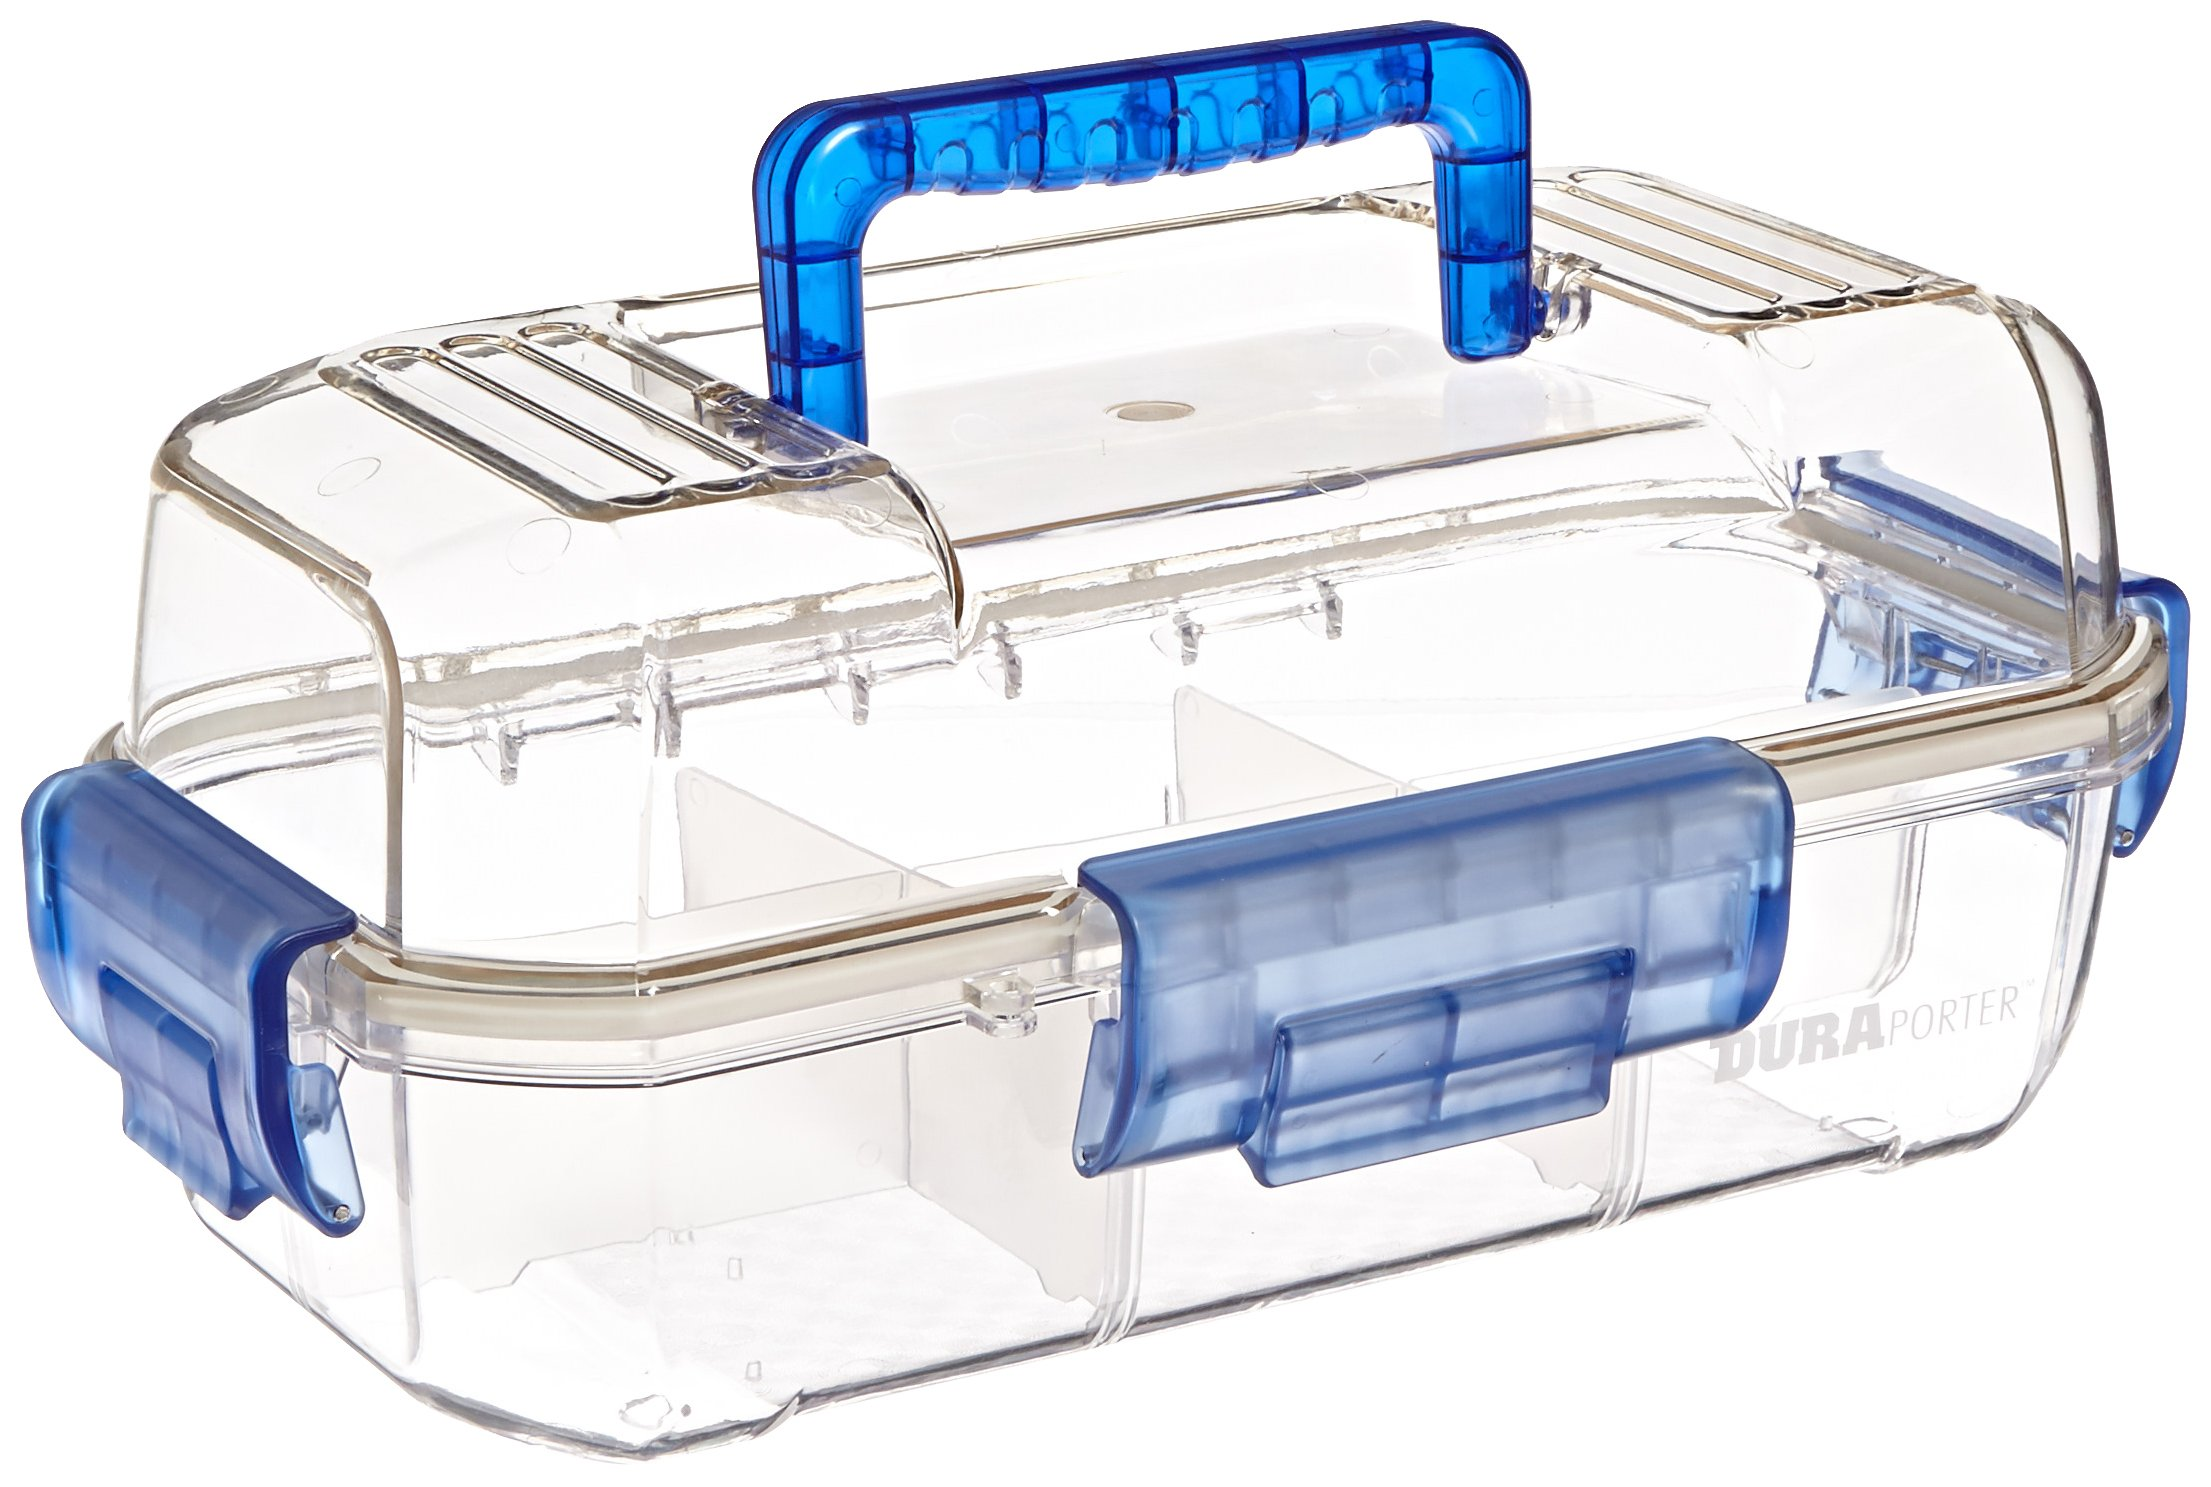 Heathrow Scientific HS120052 Duraporter Sealed Specimen Tote or Sample Transport Box, Polycarbonate, Water-Tight, Clear with Blue Handles